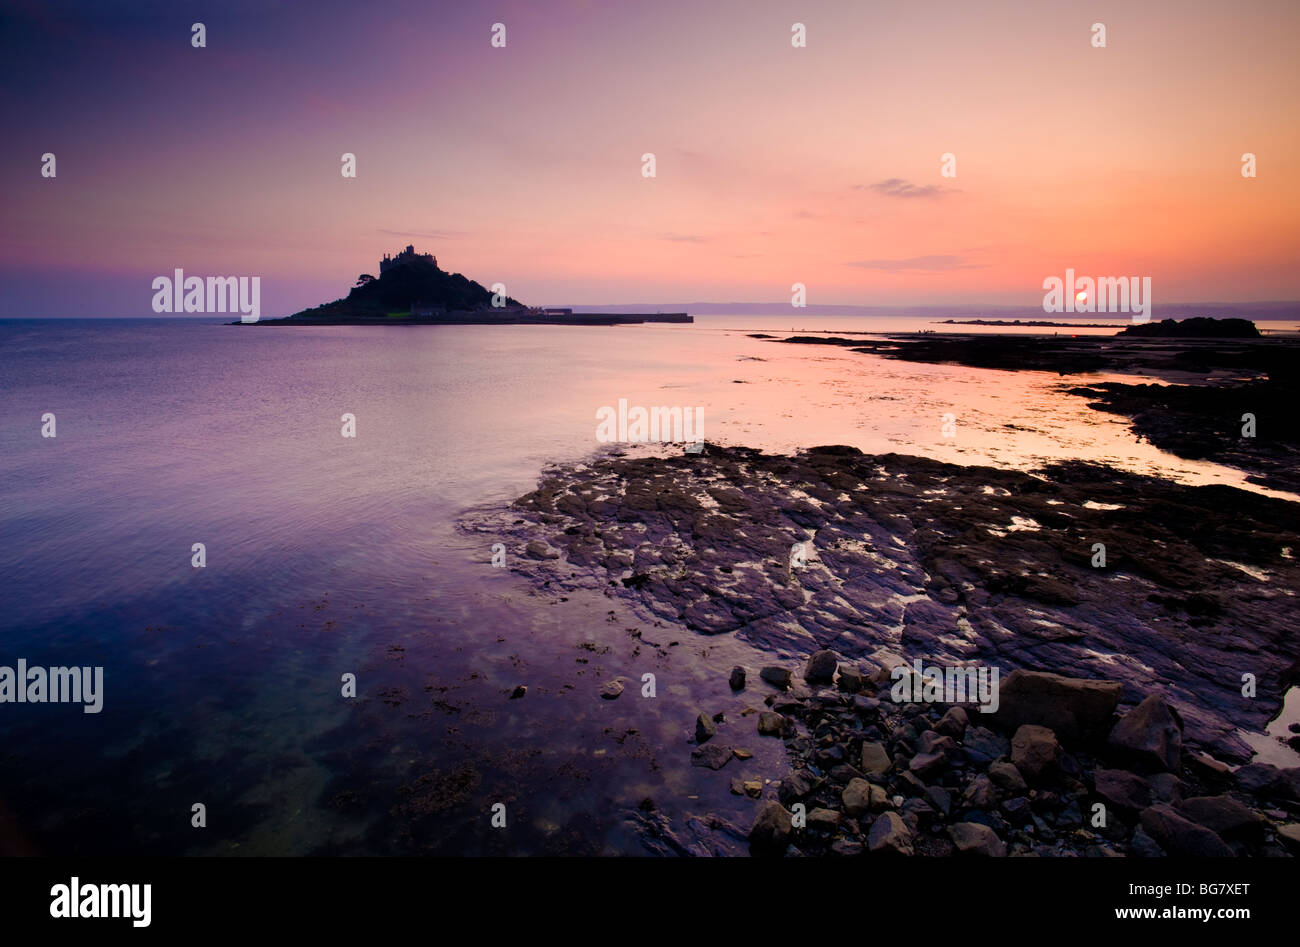 St Michaels Mount, Penzance, Cornwall, England, UK Photo Stock